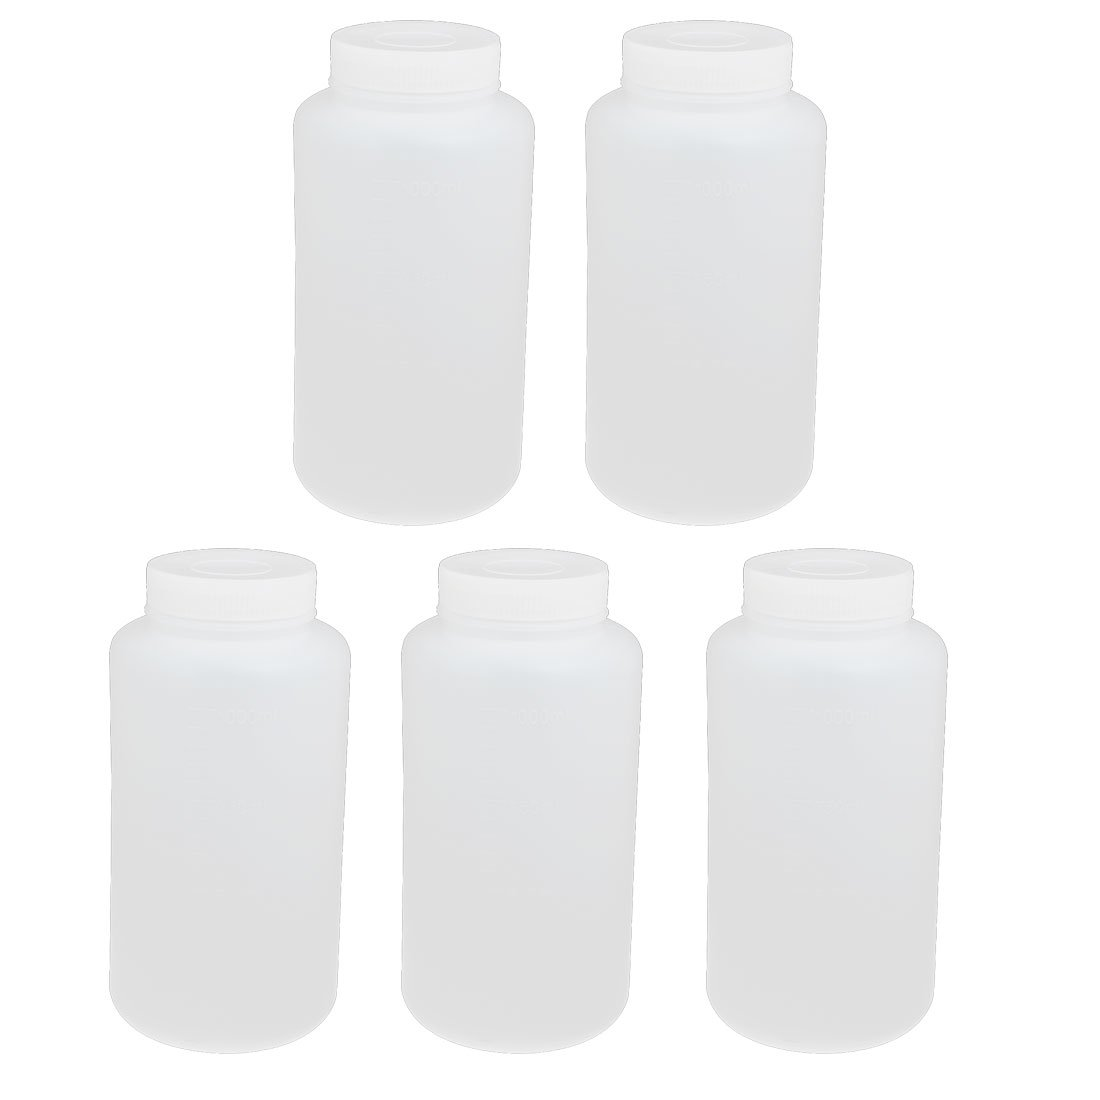 uxcell 5pcs 1000ml PE Plastic Wide Mouth Sealed Liquid Storage Bottle Container White